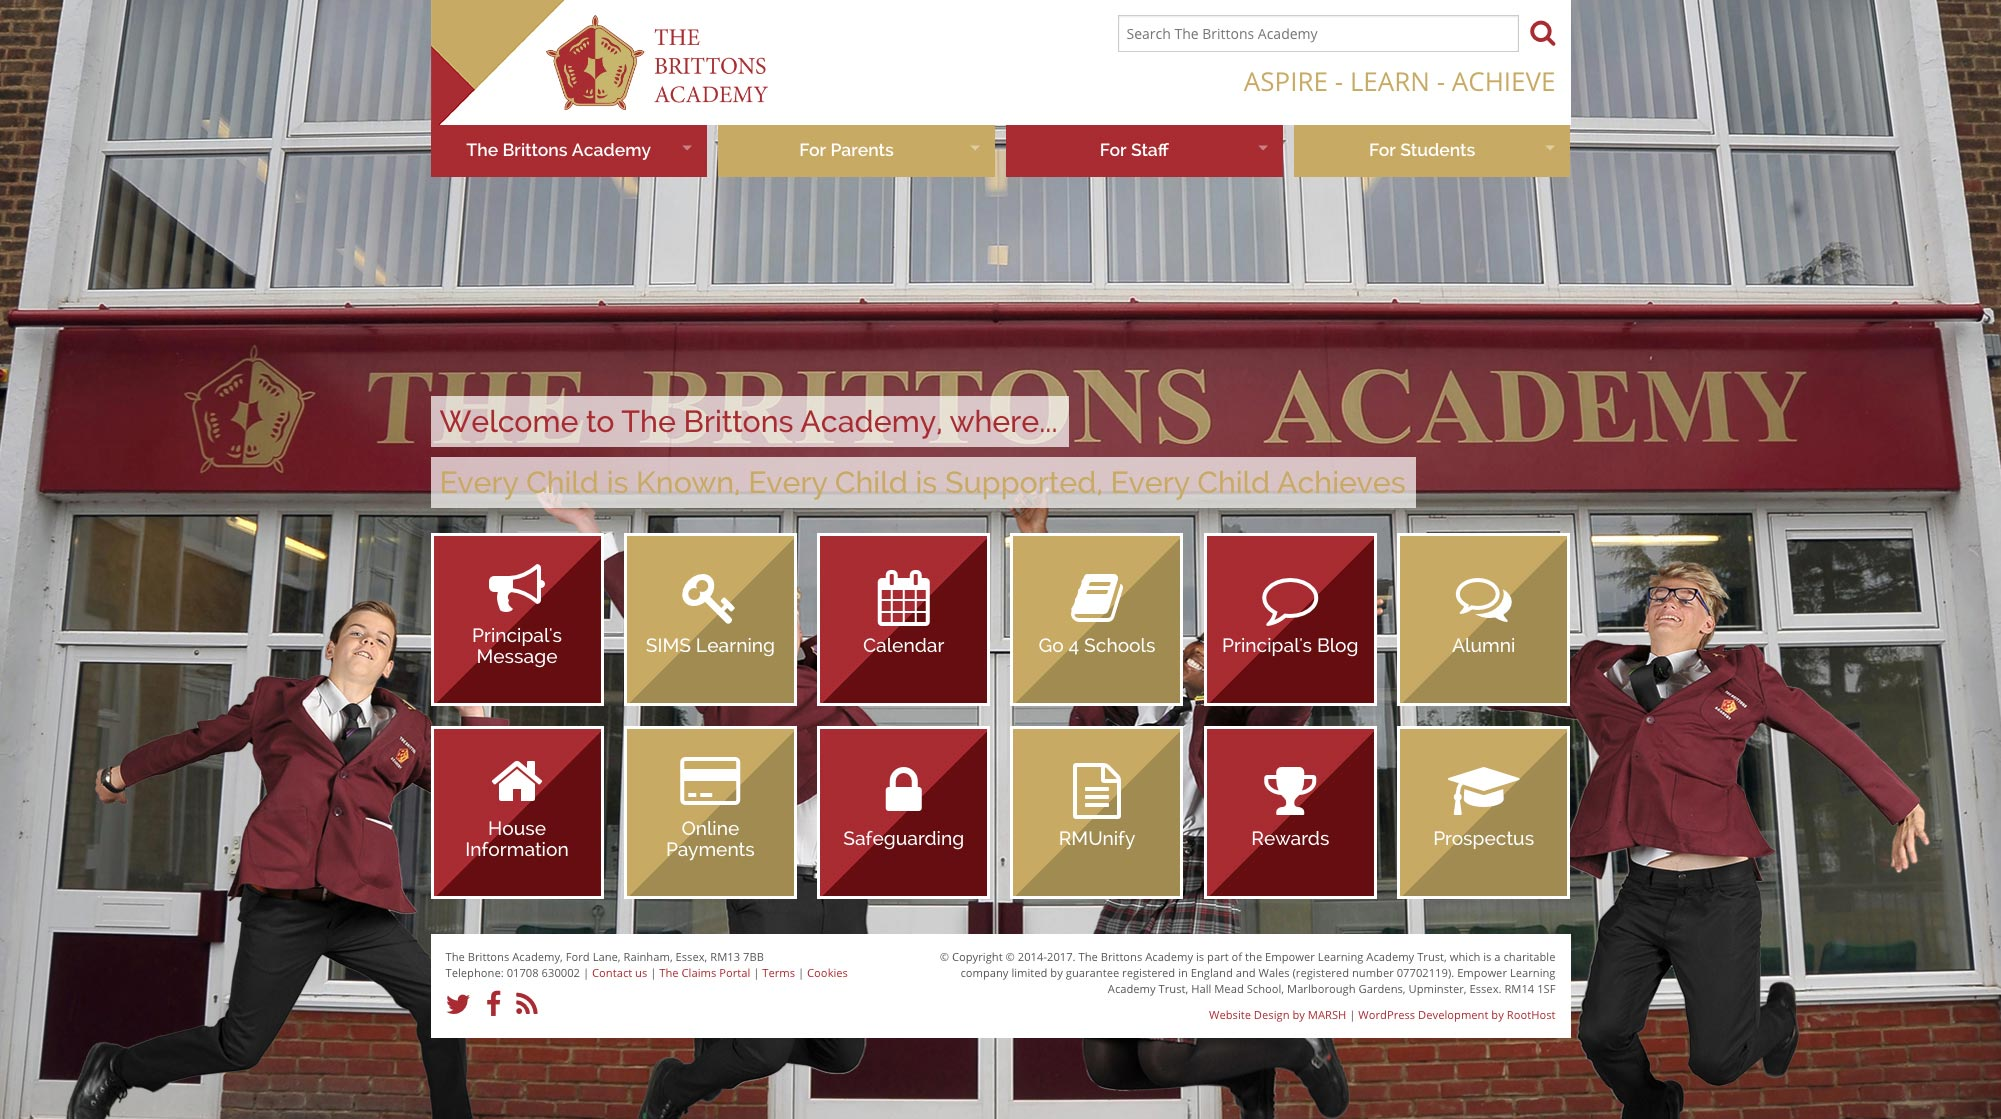 The Brittons Academy Home Page